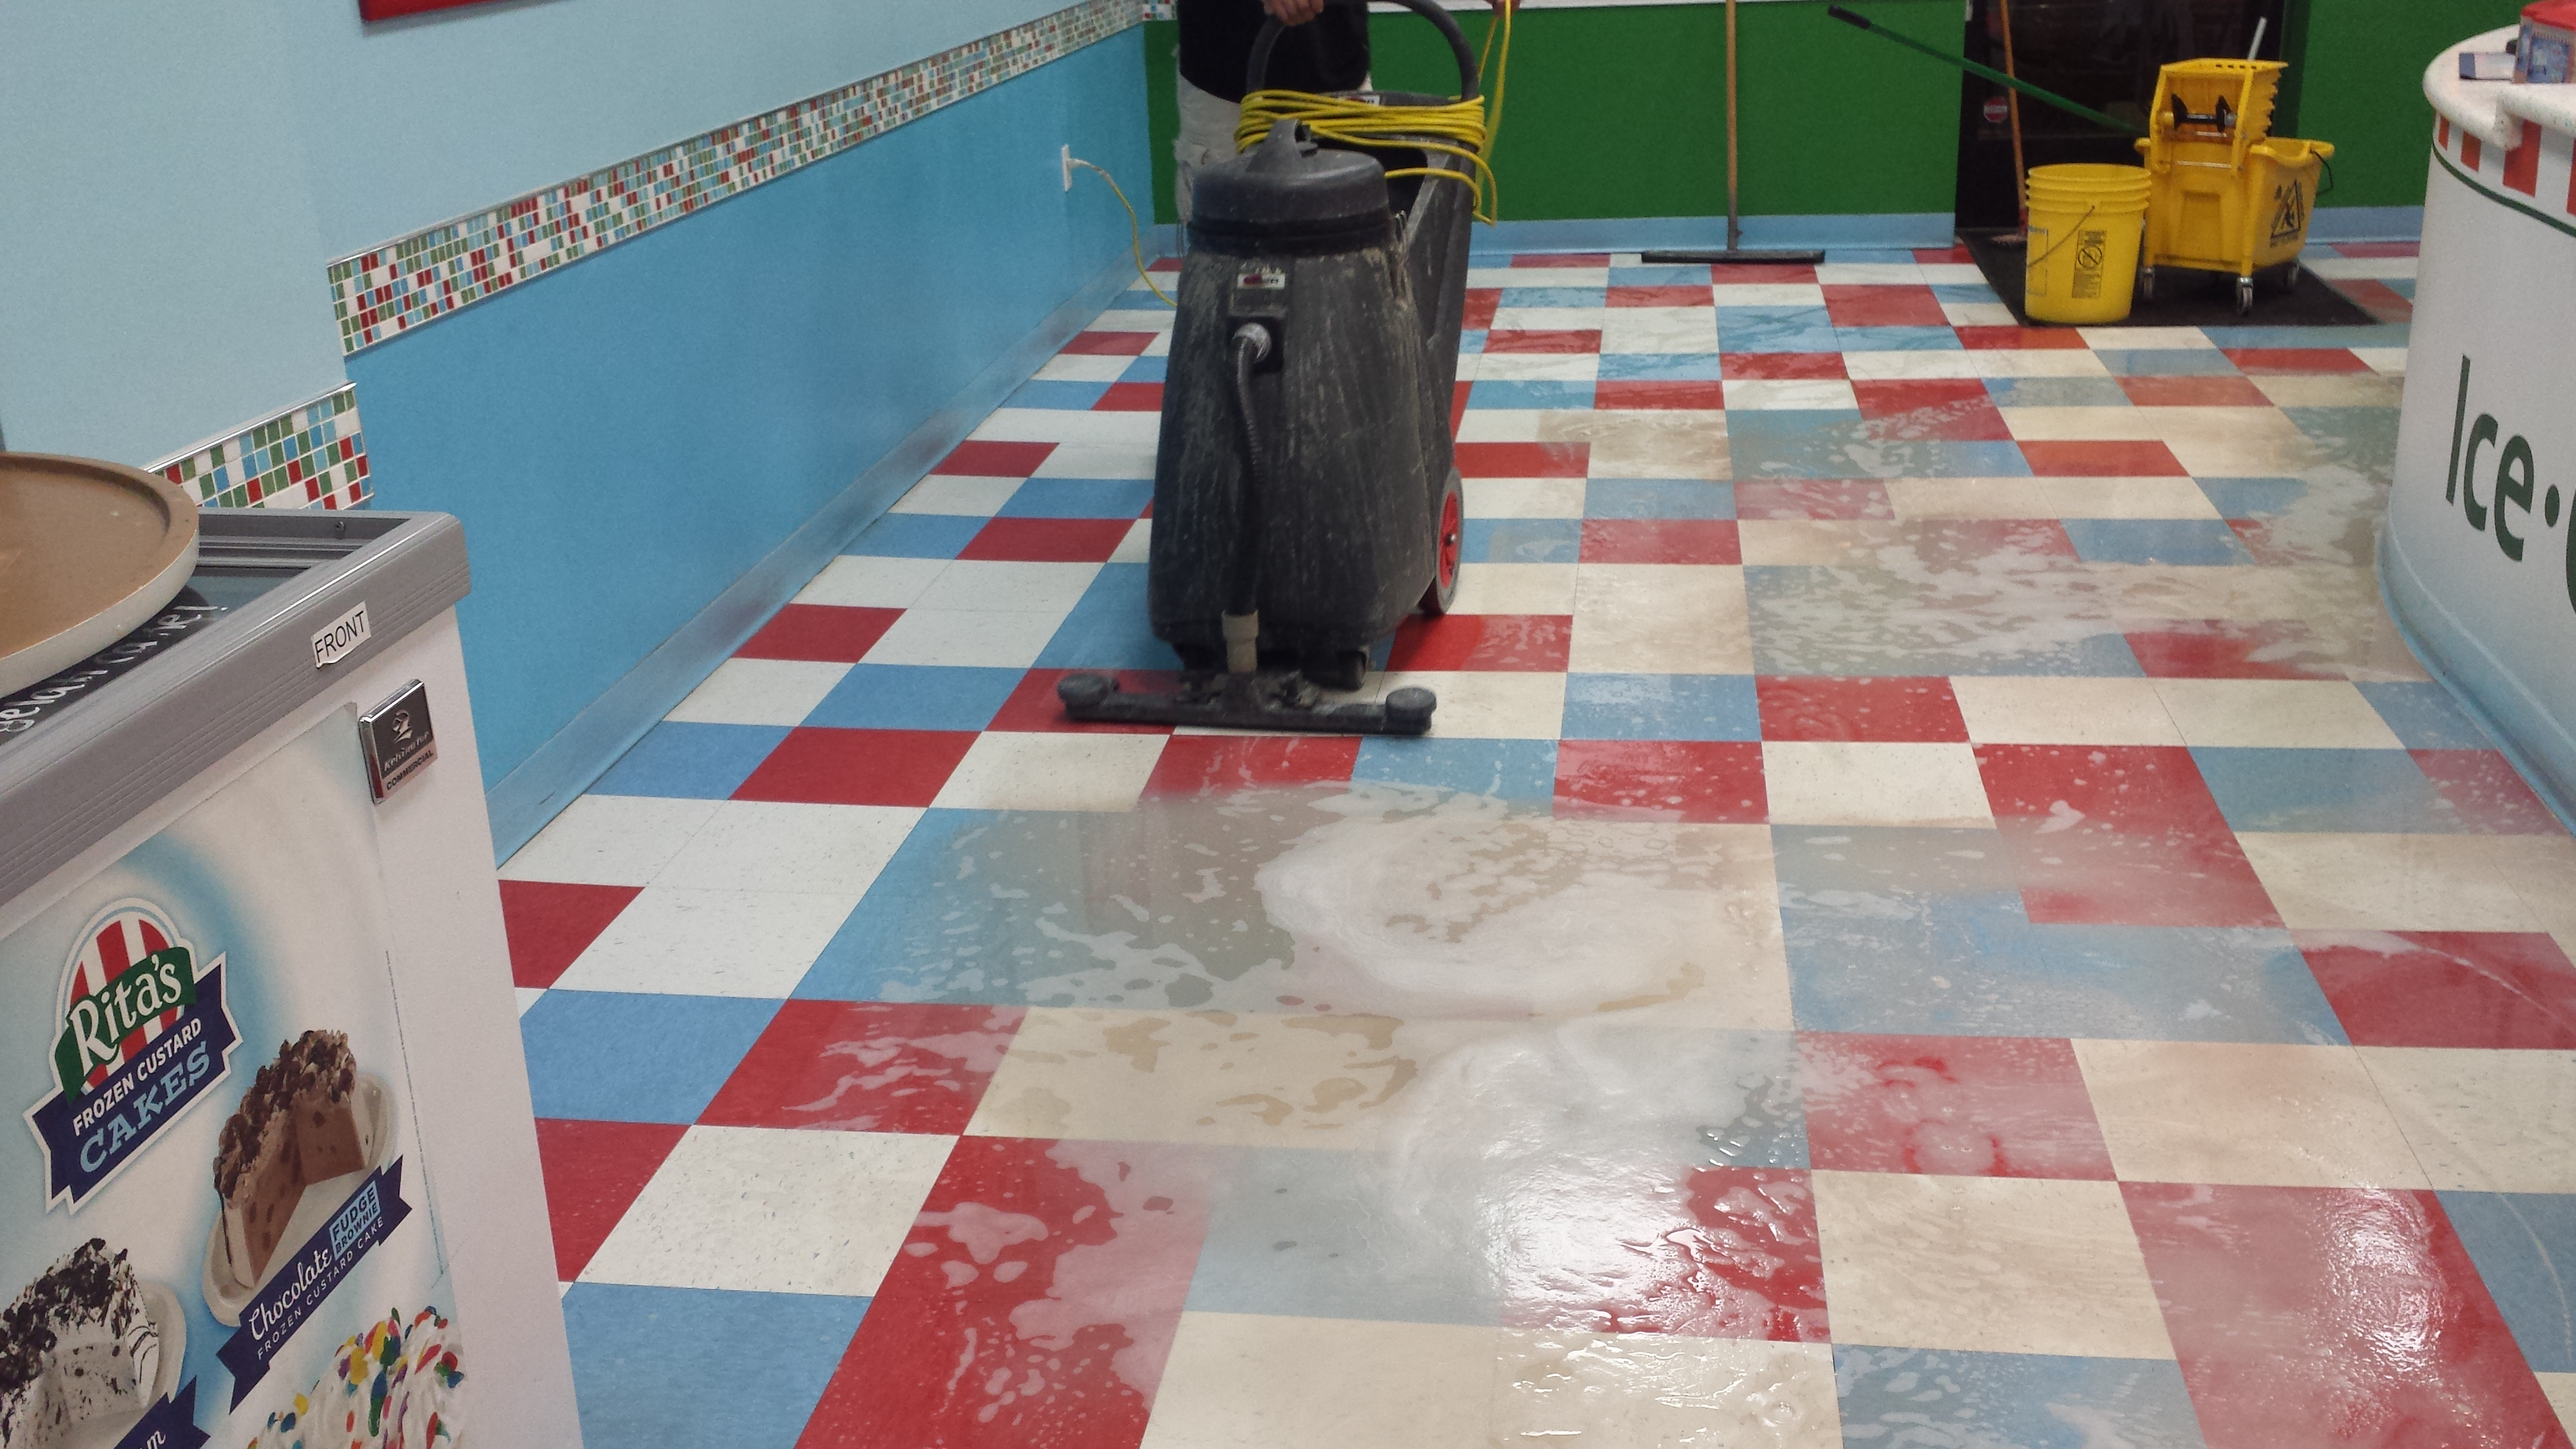 Floor Cleaning Stripping And Waxing Services P J Cleaning